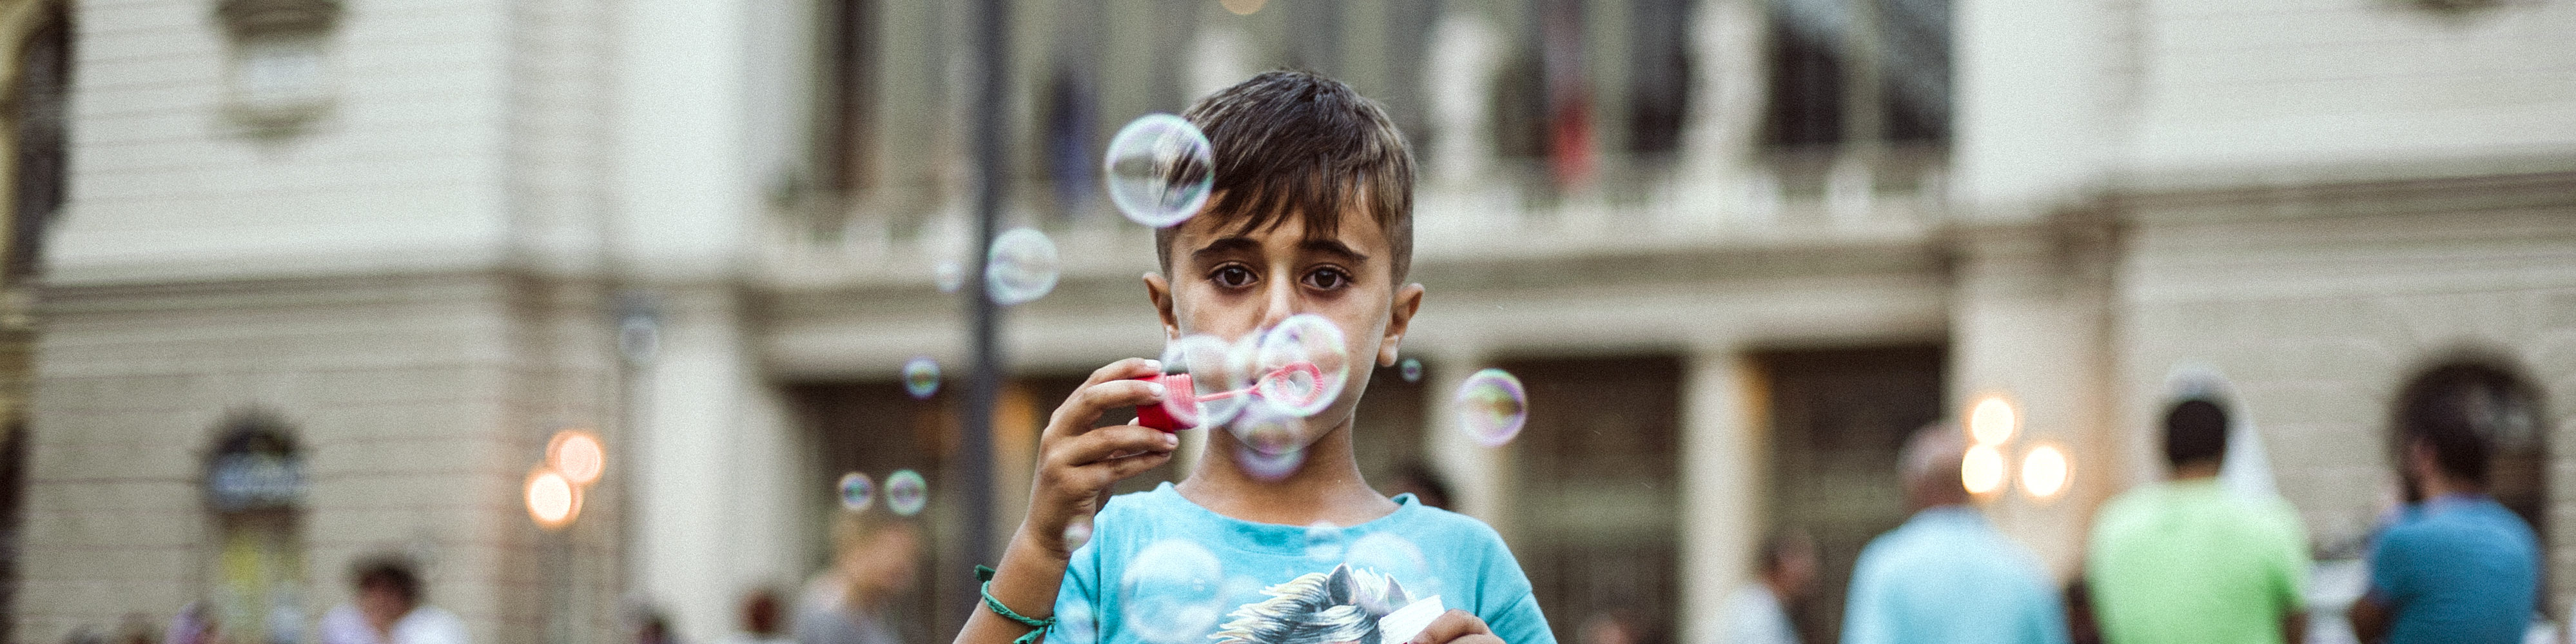 Syrian refugee playing with soap bubbles in Hungary.